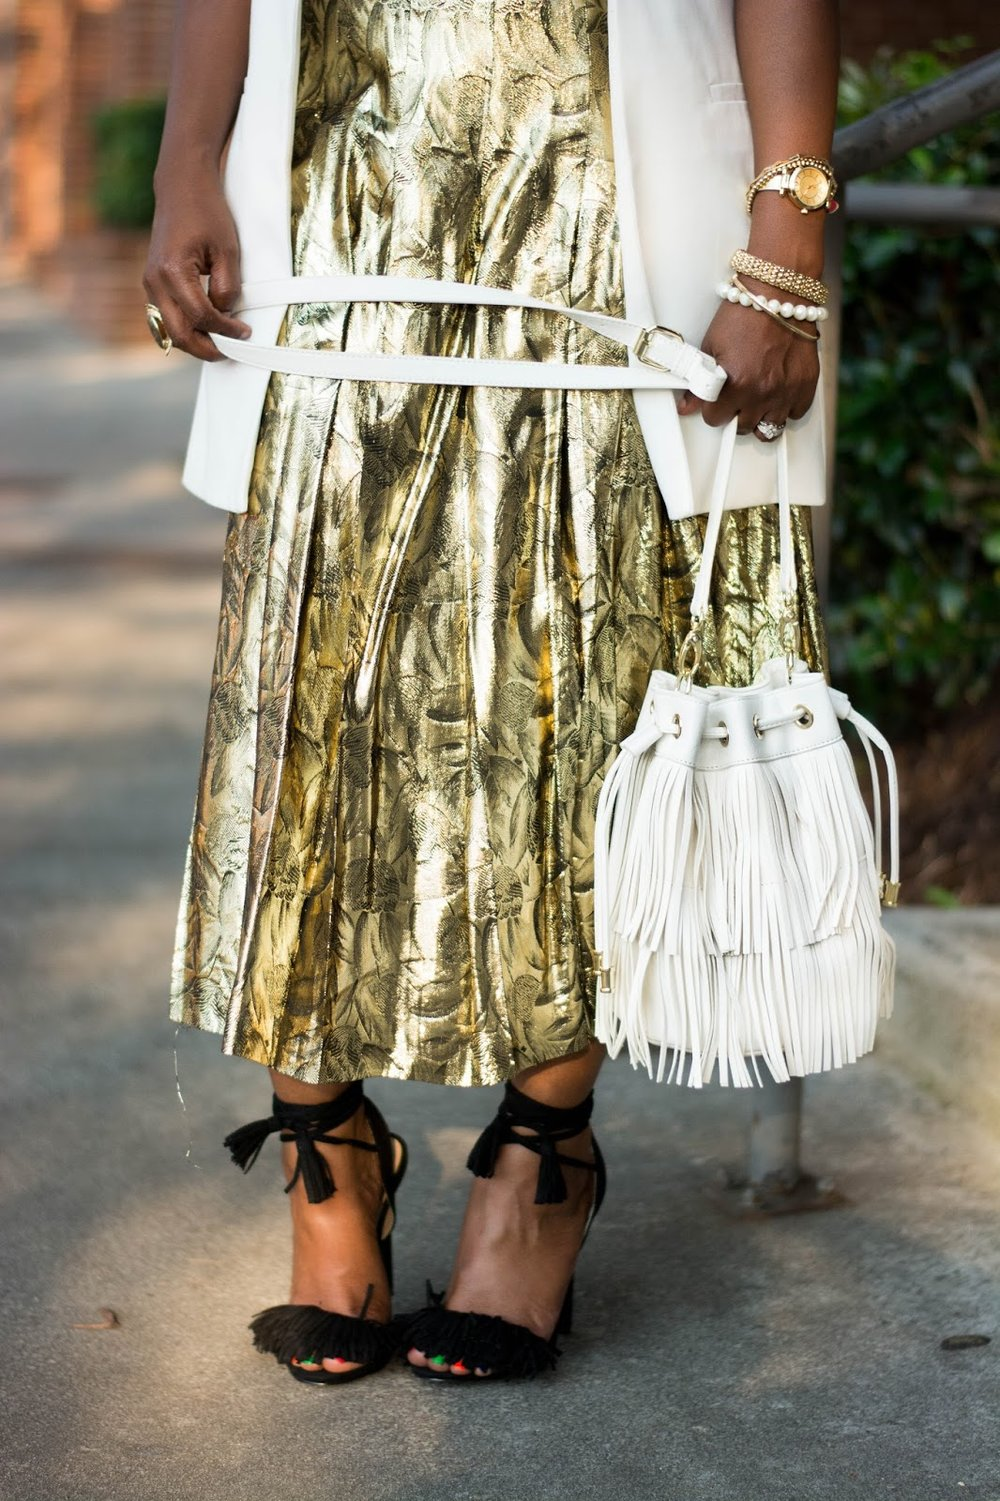 Atlanta style blogger, style blogger, Atlanta stylist, Street style, Vintage fashion, Metallic gold skirt, Fringe sandals, Cream vest, Target style, Thrifted fashion, Shoedazzle, Justfab, Atlanta influencer, Style influencer, fringe bucket handbag, Black girls rock, Black blogger, Browngirls, Natural Hair styles, Black girls killing it, Black girl fashion, Fashion style, Wardrobe stylist, Atlanta street style, Atlanta style